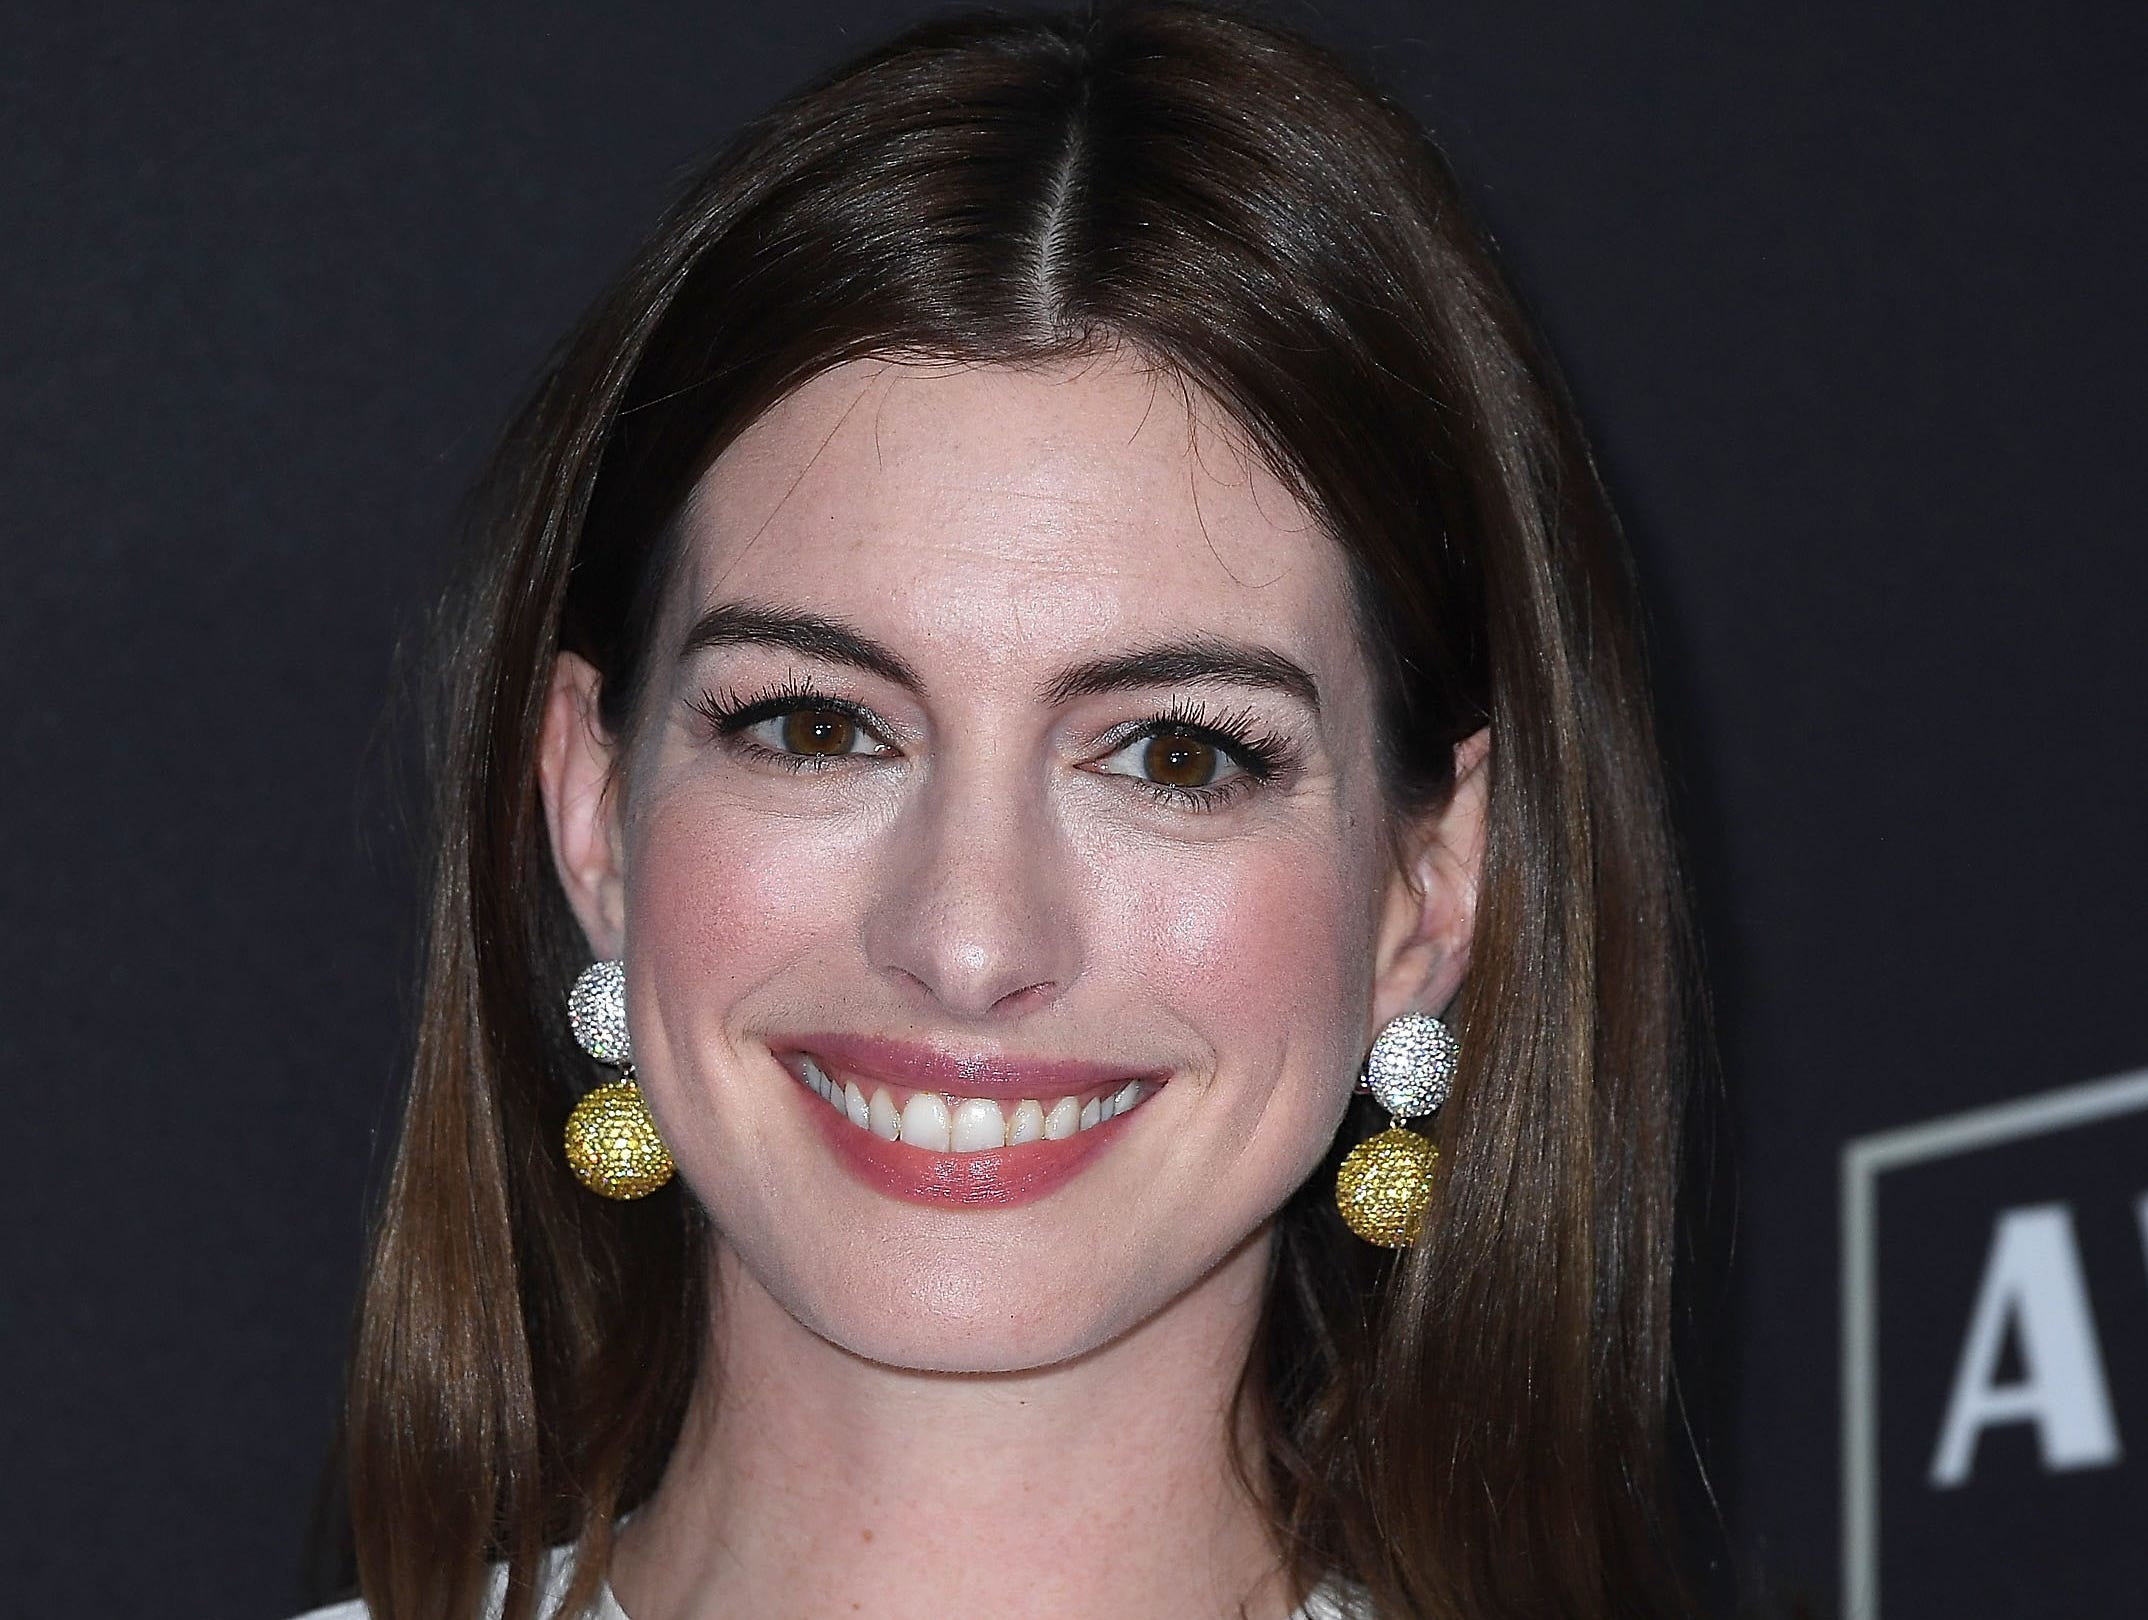 BEVERLY HILLS, CA - NOVEMBER 04:  Anne Hathaway arrives at the 22nd Annual Hollywood Film Awards on November 4, 2018 in Beverly Hills, California.  (Photo by Steve Granitz/WireImage) ORG XMIT: 775237947 ORIG FILE ID: 1057540454